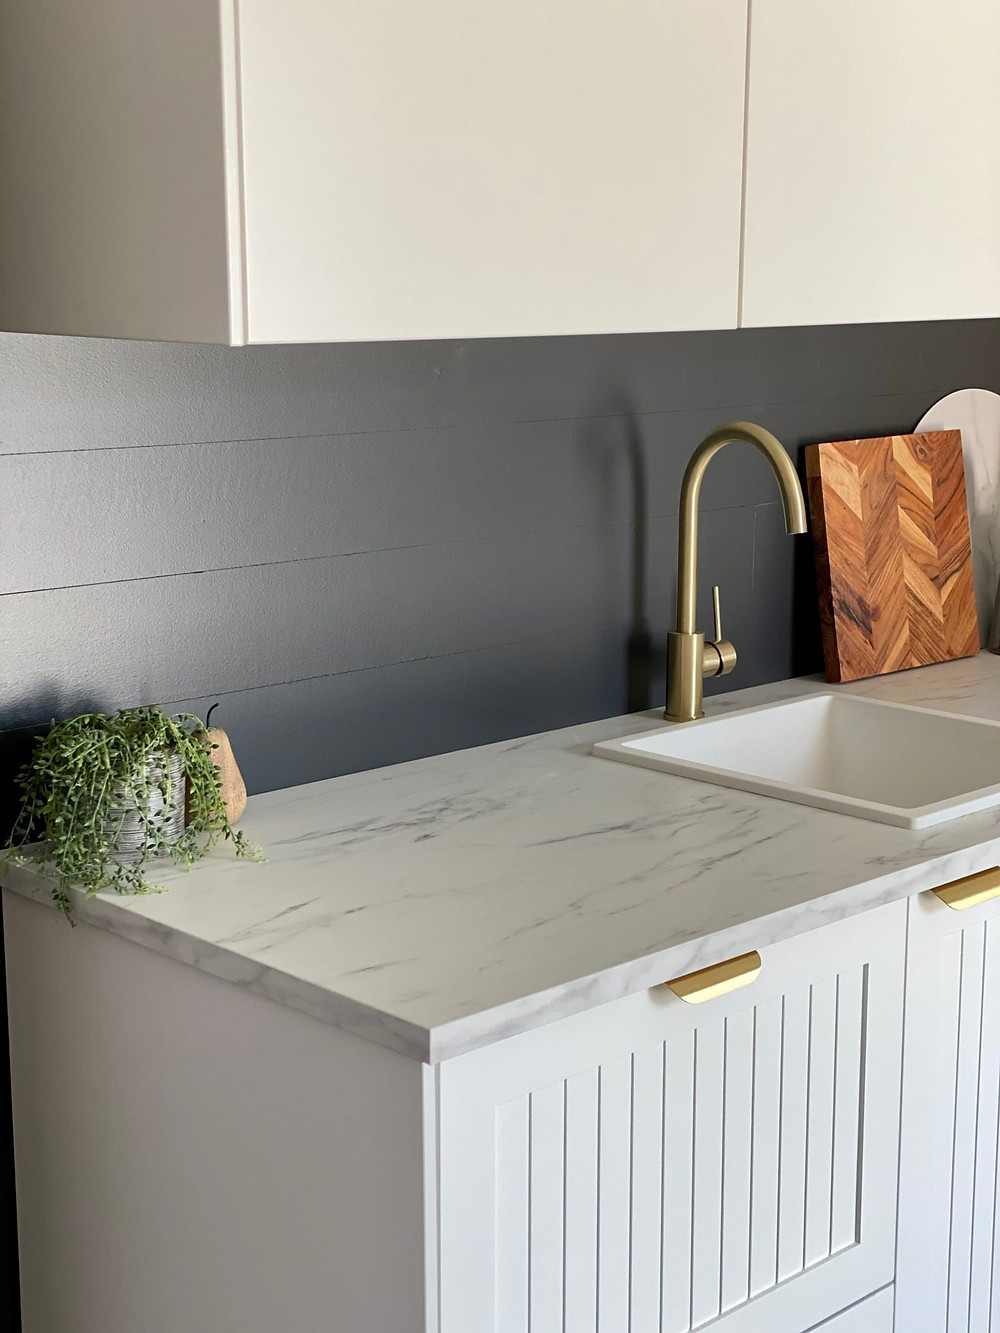 IKEA Metod kitchen cupboards with Customea's Shake The Line fronts and brass handles